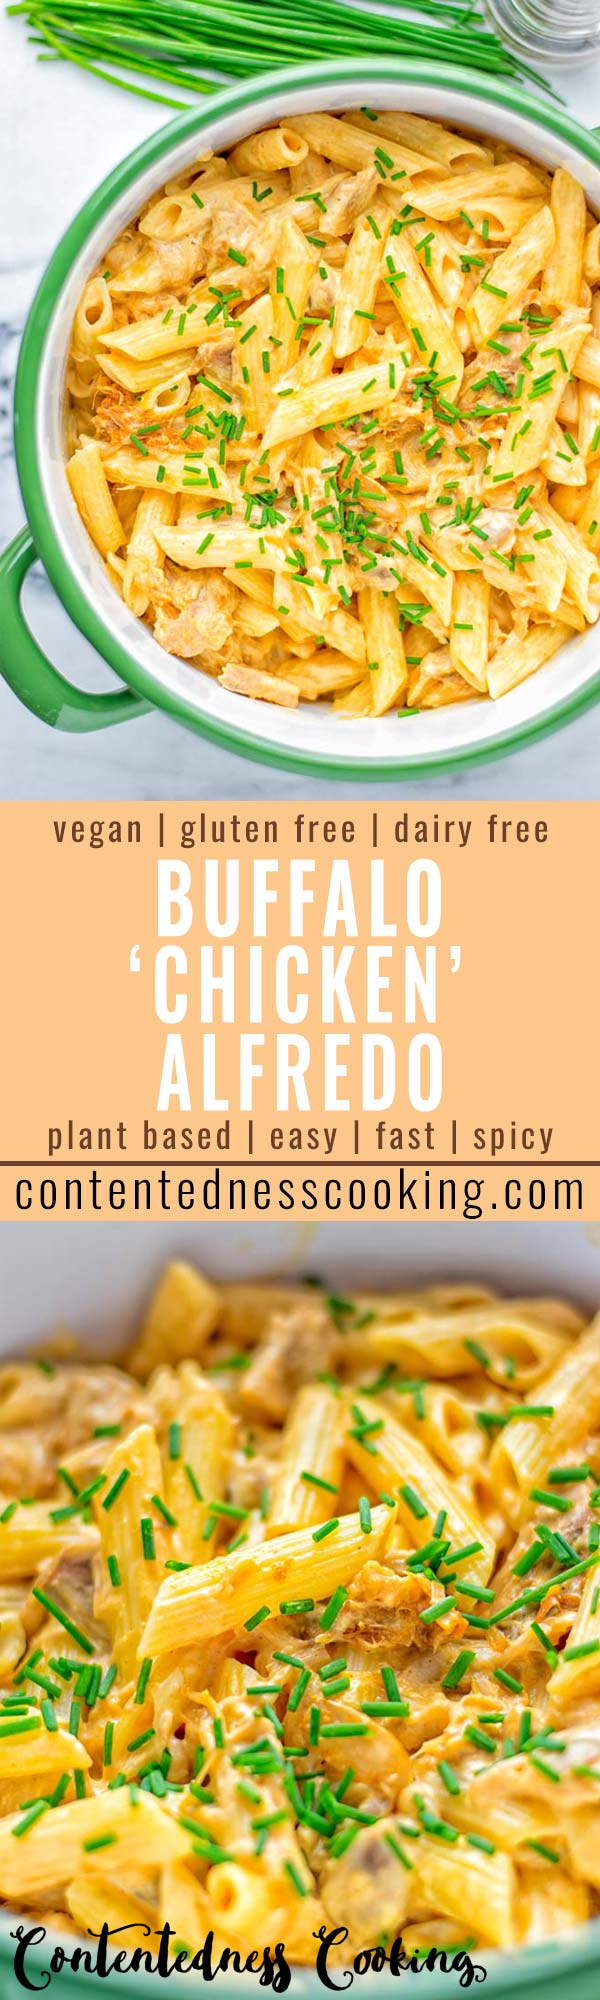 This Vegan Buffalo Chicken Alfredo is naturally plant based and glutenfree. The ultimate comfort food so easy for dinner, lunch, meal prep and work lunches. Try it now, from the first bite you will crave some more. #vegan #glutenfree #dairyfree #contentednesscooking #vegetarian #buffalorecipes #dinner #lunch #easyfood #mealprep #worklunchideas #alfredo #veganchicken #pasta #pastadishes #familyrecipes #comfortfood